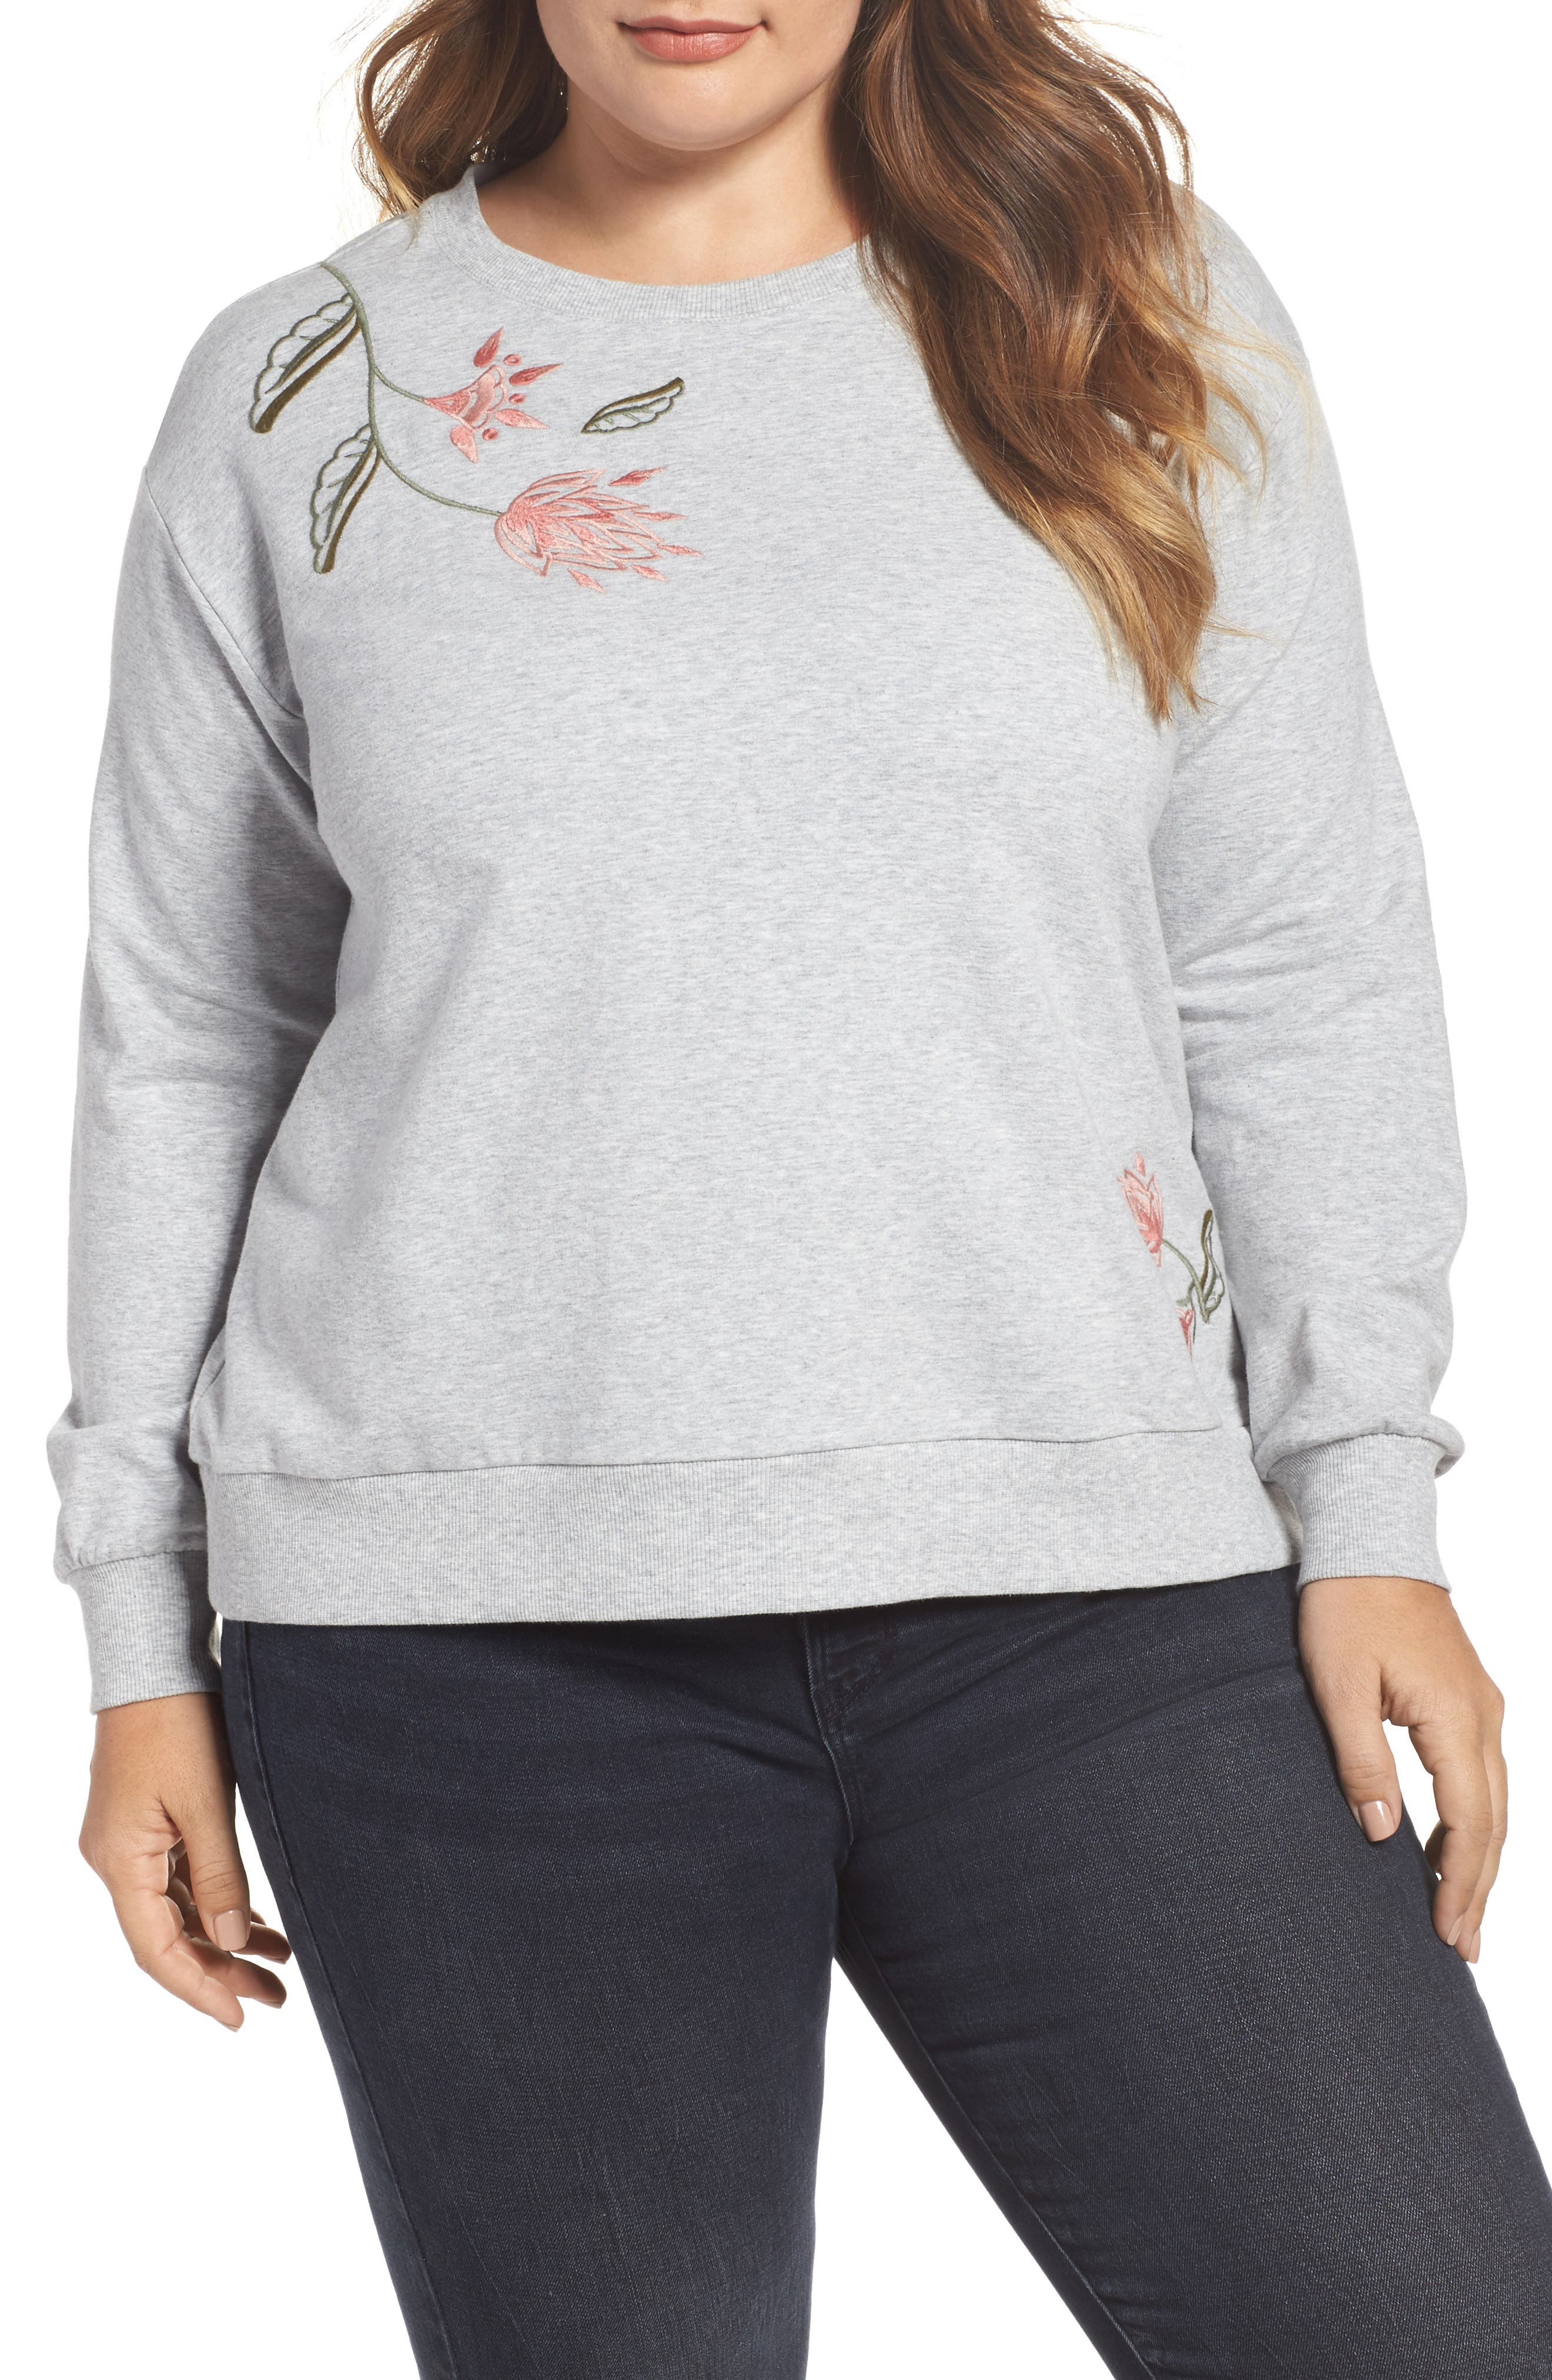 Main Image - Two by Vince Camuto Embroidered Sweatshirt (Plus Size)